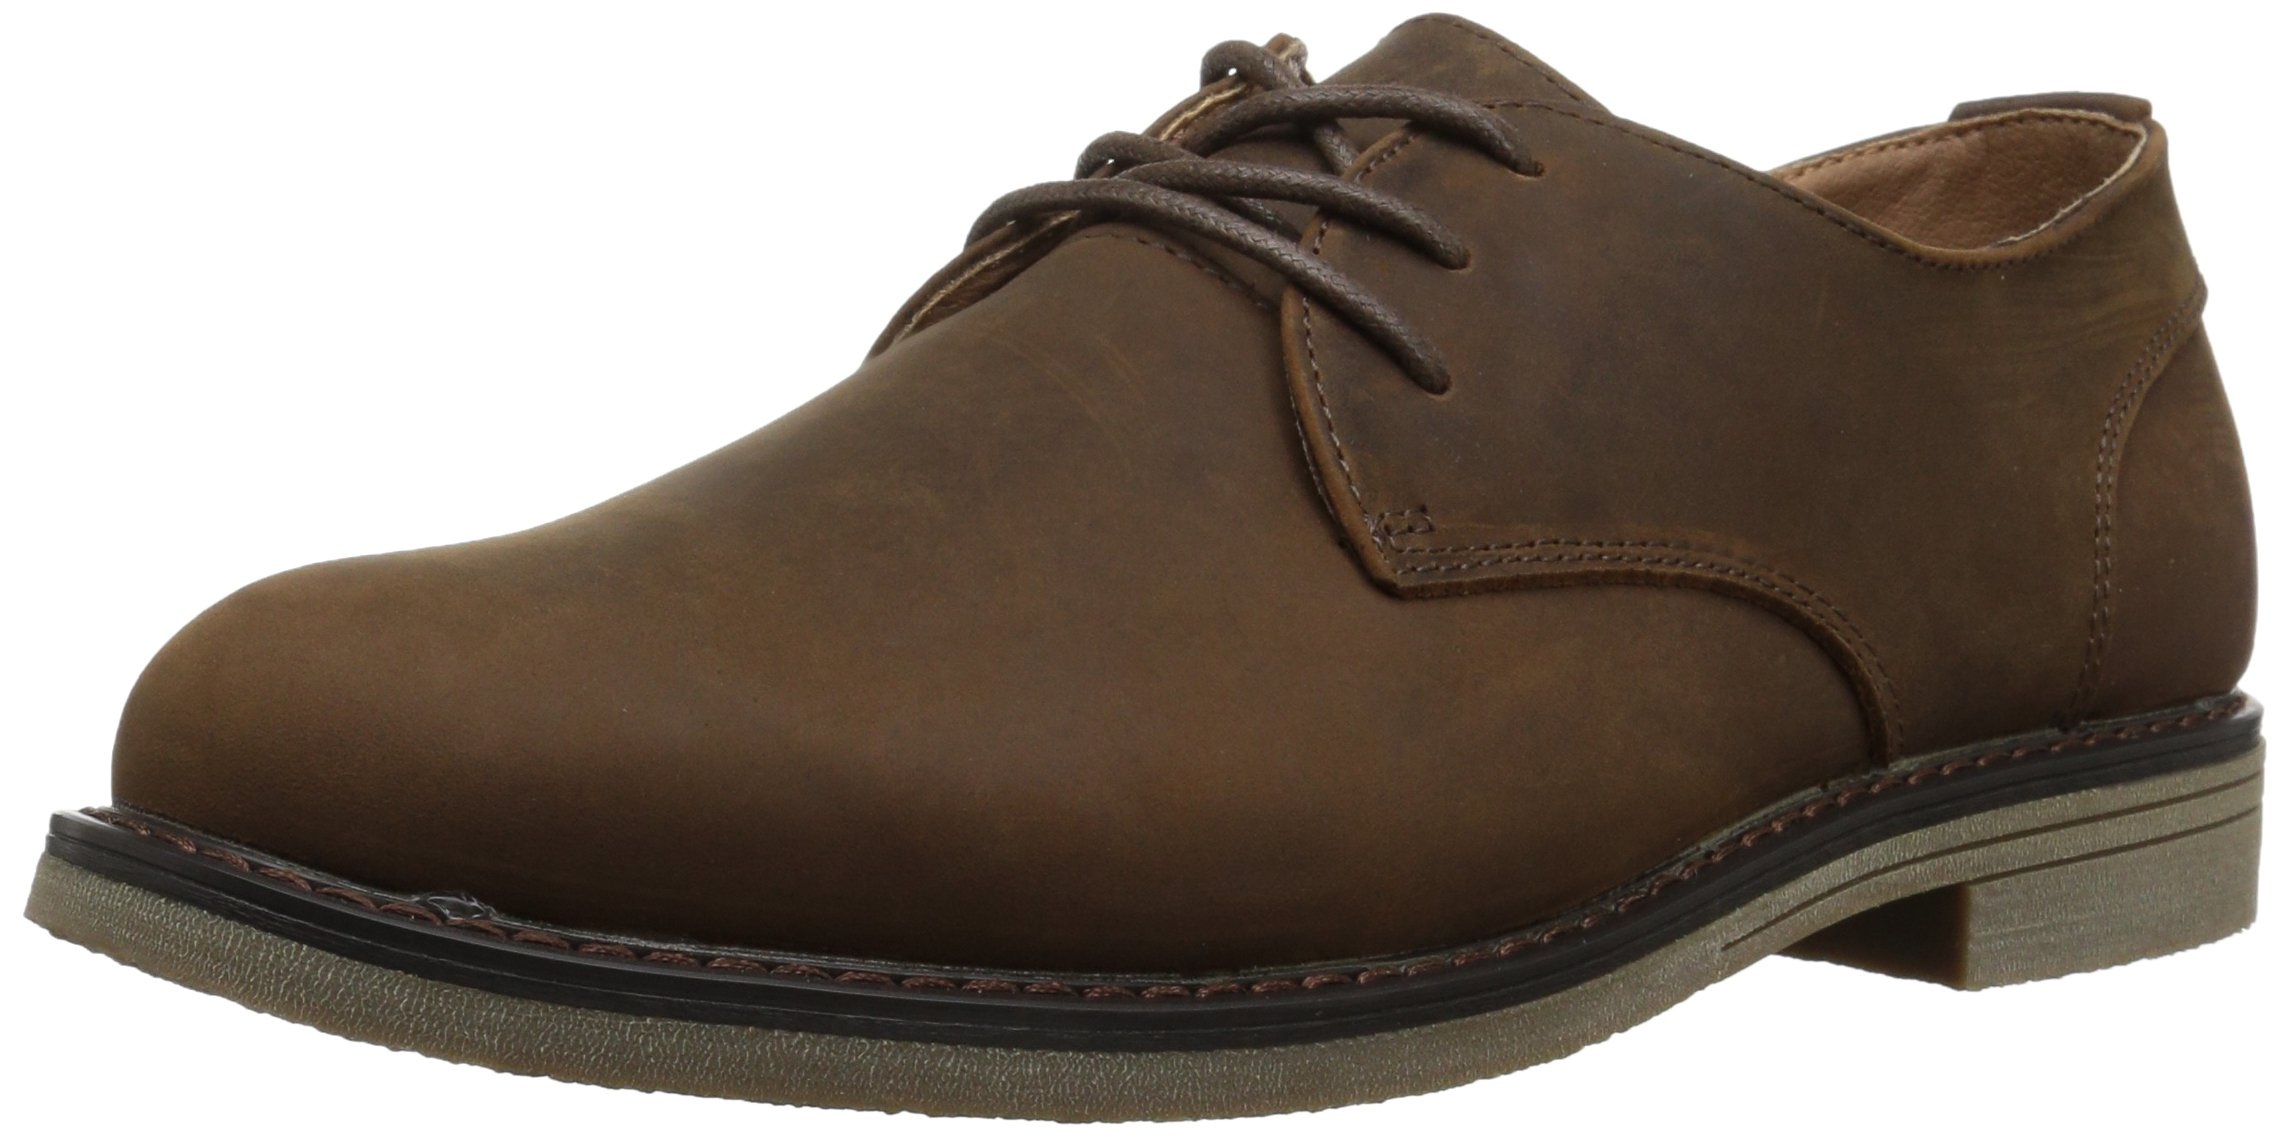 Nunn Bush Men's Linwood Plain Toe Oxford, Brown, 9 M US